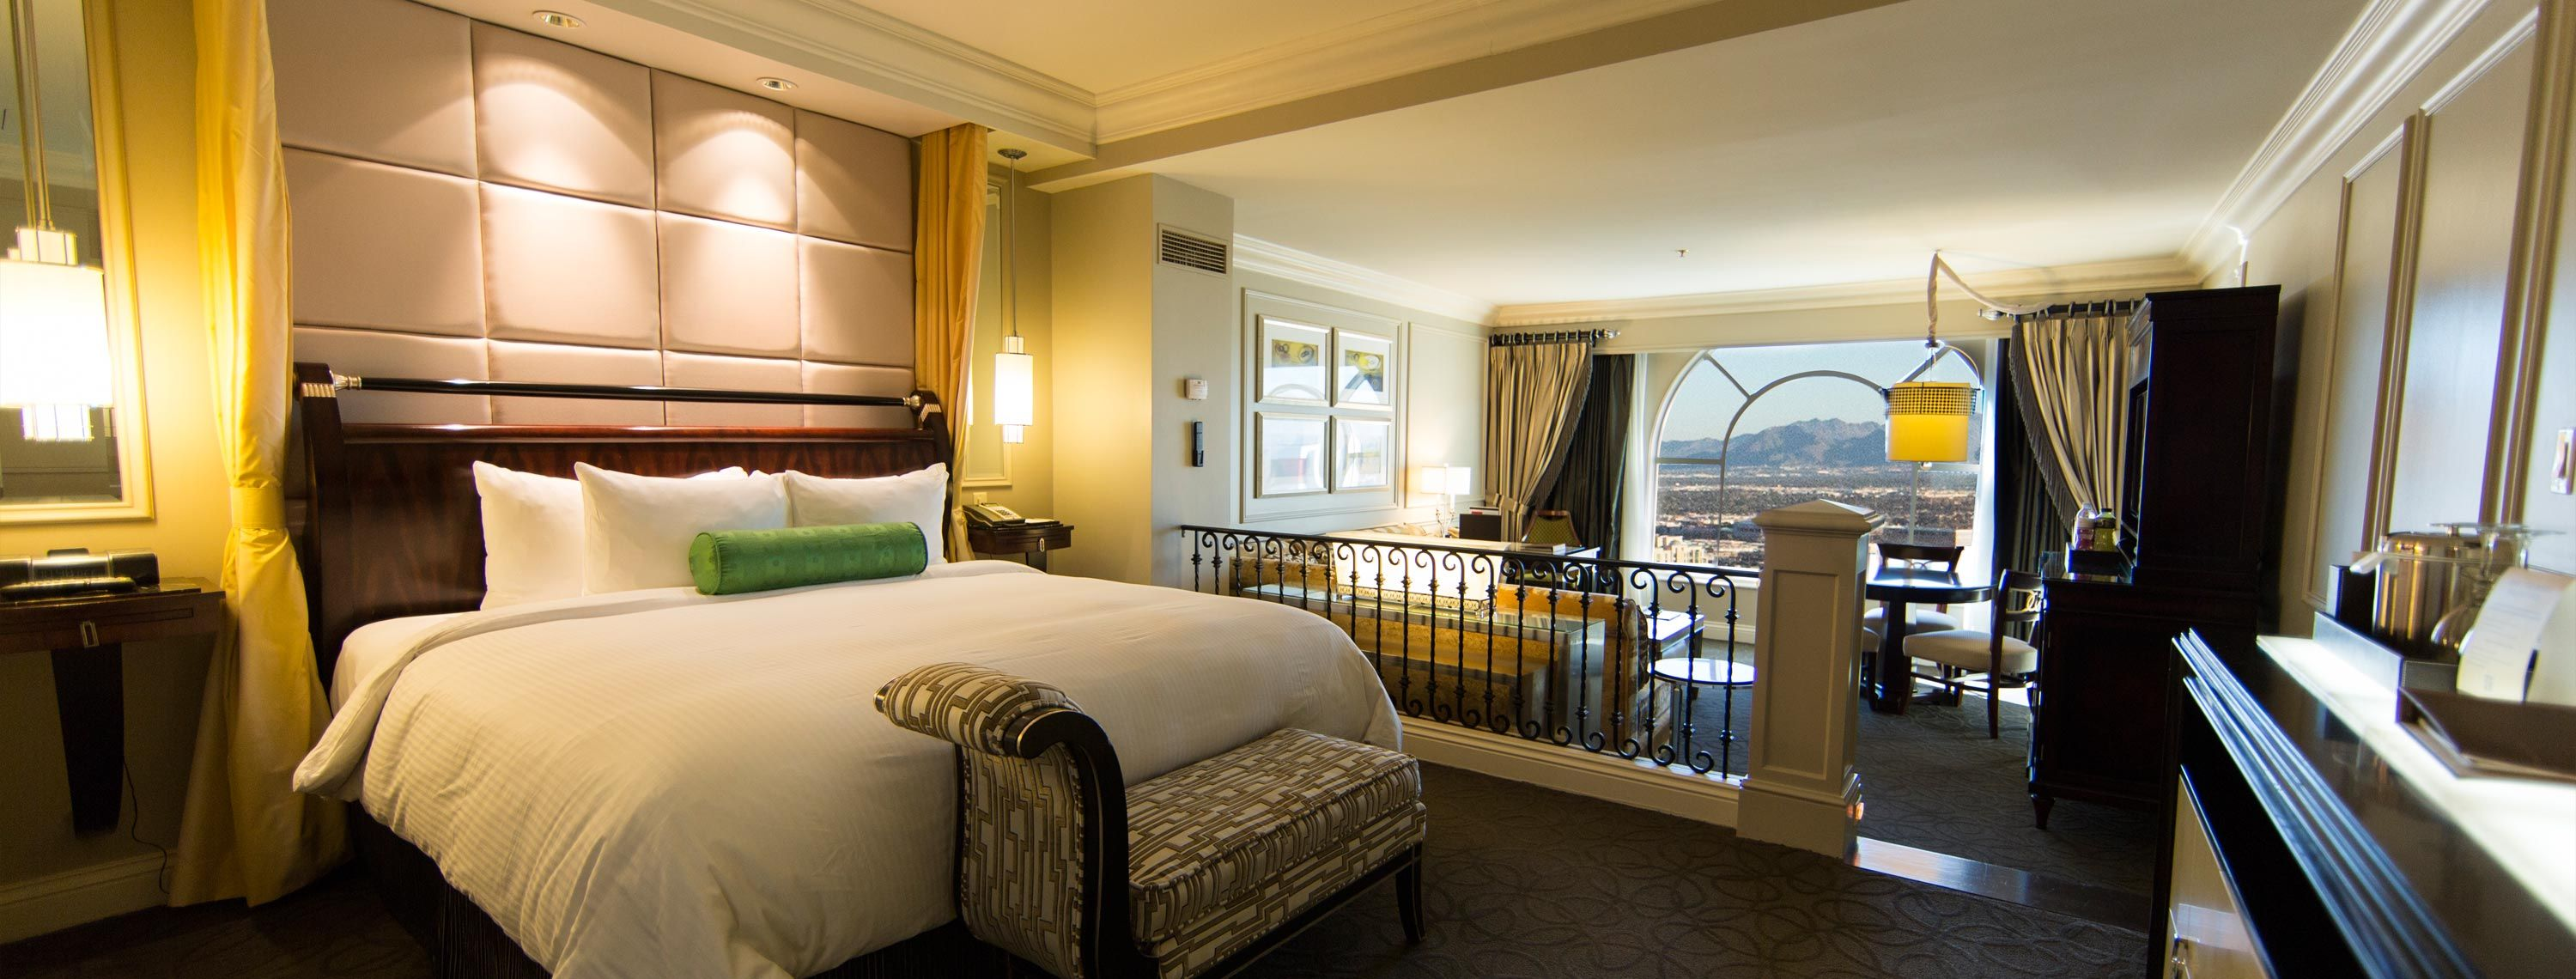 Accommodations Venetian Palazzo Las Vegas With Images Las